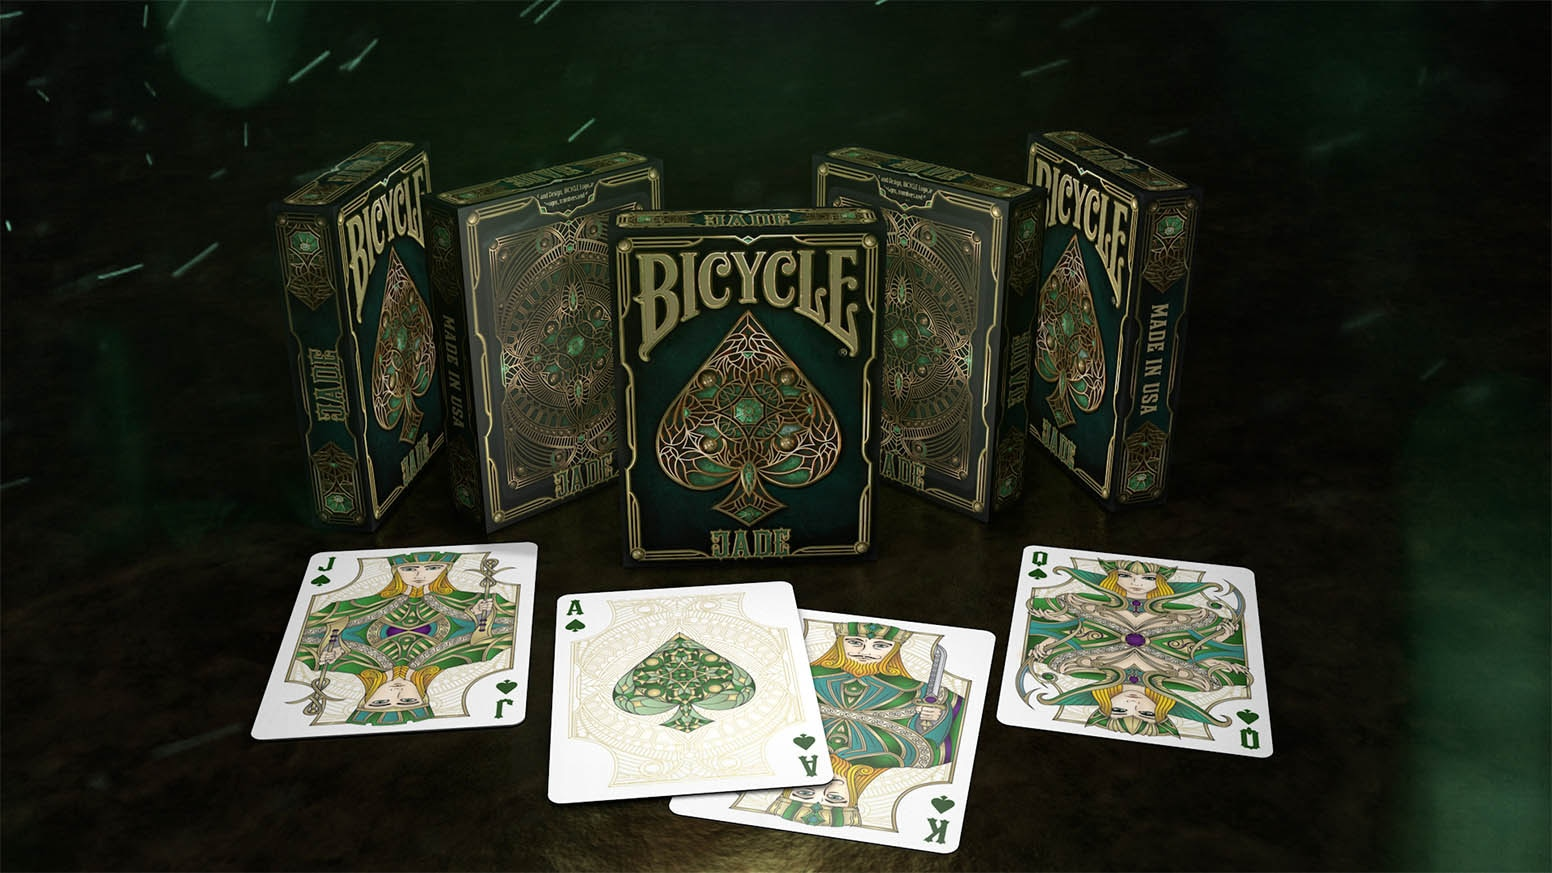 A jewel designed by Shapeshifters, printed by the USPCC &produced by Gambler's Warehouse.